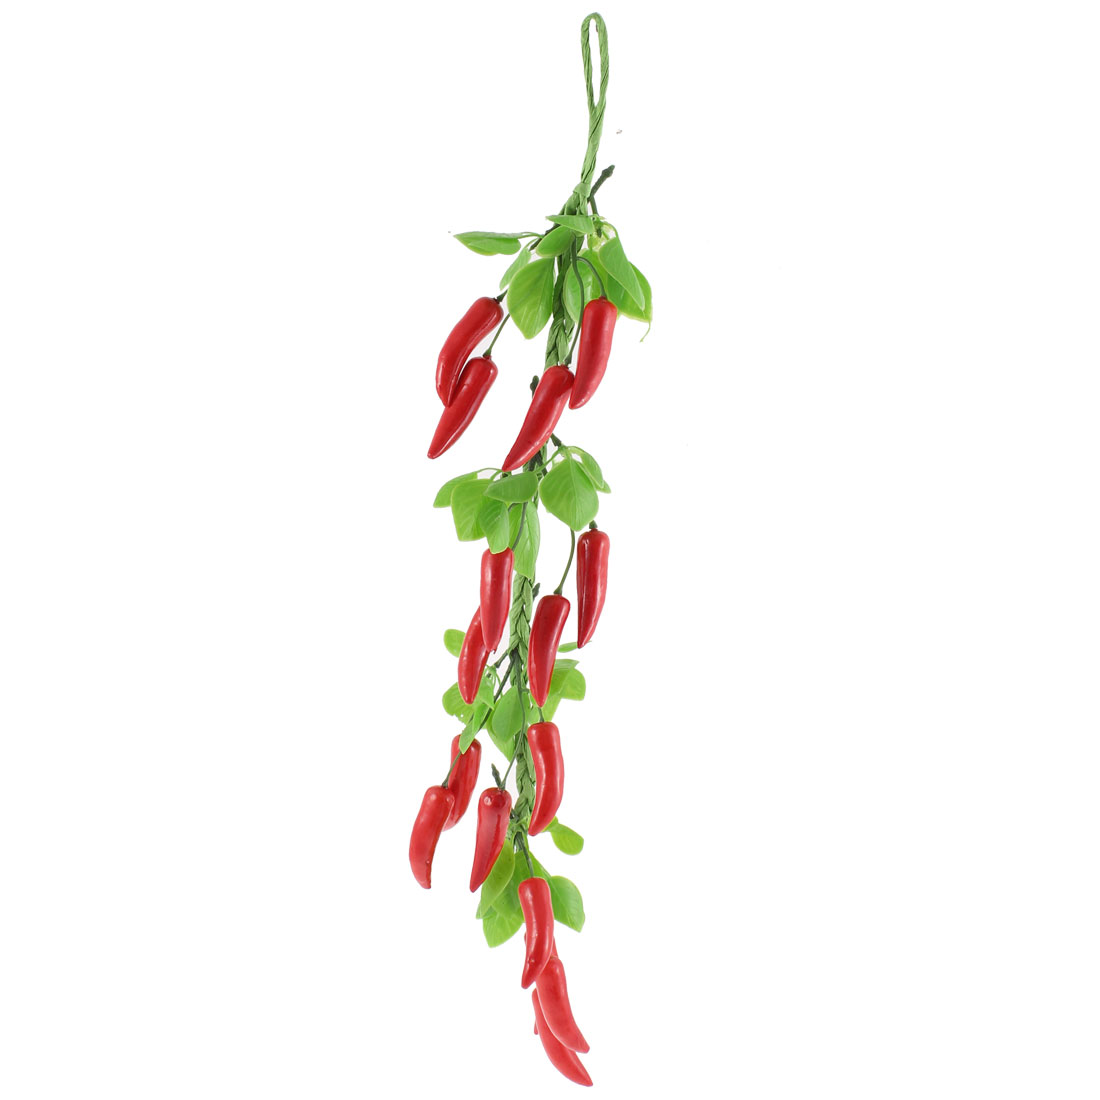 Home Artificial Fake Mini Chili Pepper Garland Vine